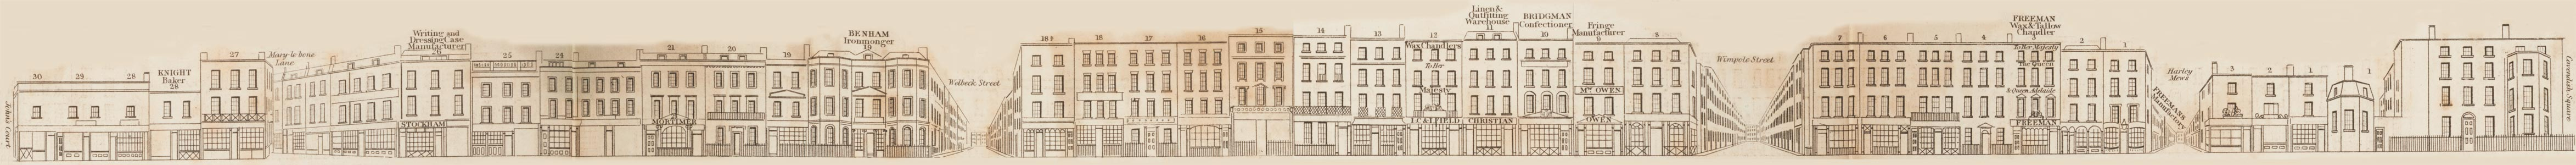 map - Tallis's London street views : No. 50. Wigmore Street, Cavendish Square (north)